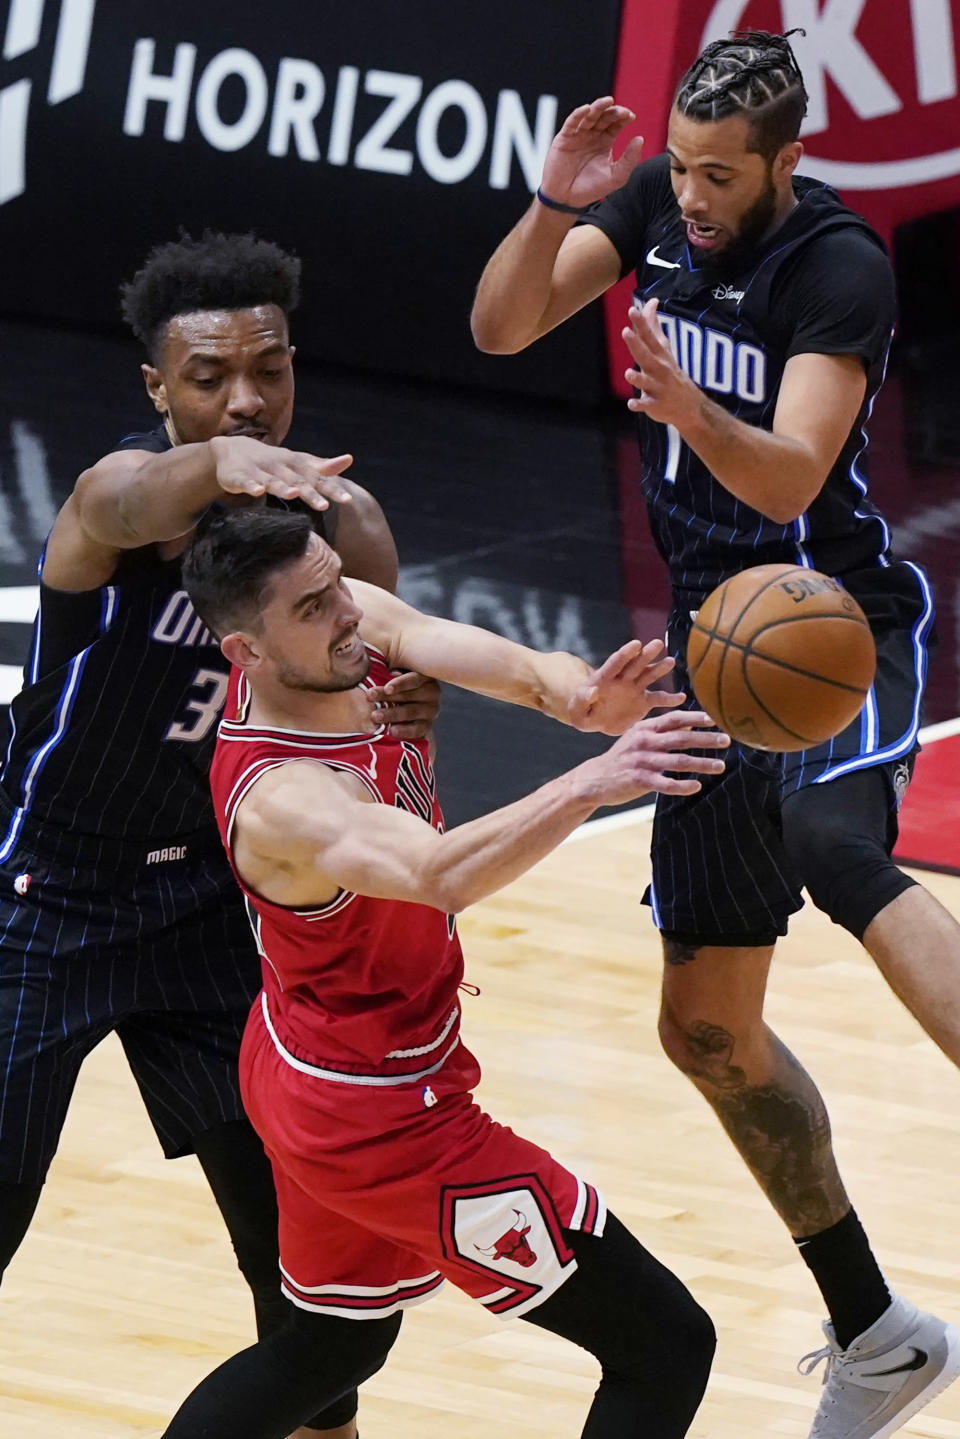 Chicago Bulls guard Tomas Satoransky, center, passes the ball as Orlando Magic center Wendell Carter Jr., left, and guard Michael Carter-Williams defend during the first half of an NBA basketball game in Chicago, Wednesday, April 14, 2021. (AP Photo/Nam Y. Huh)